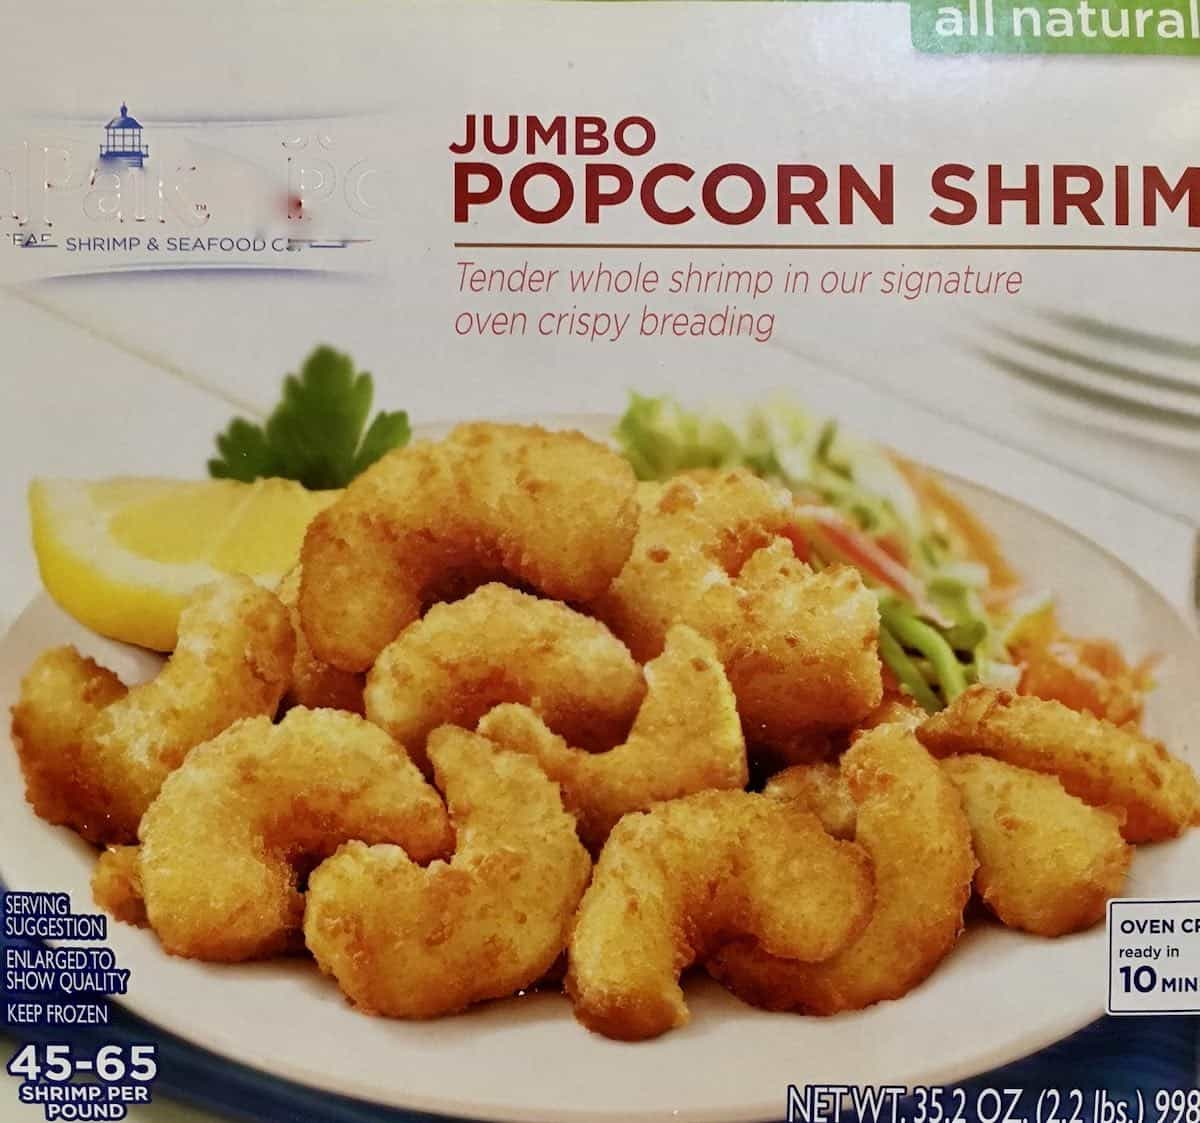 Jumbo popcorn shrimp package